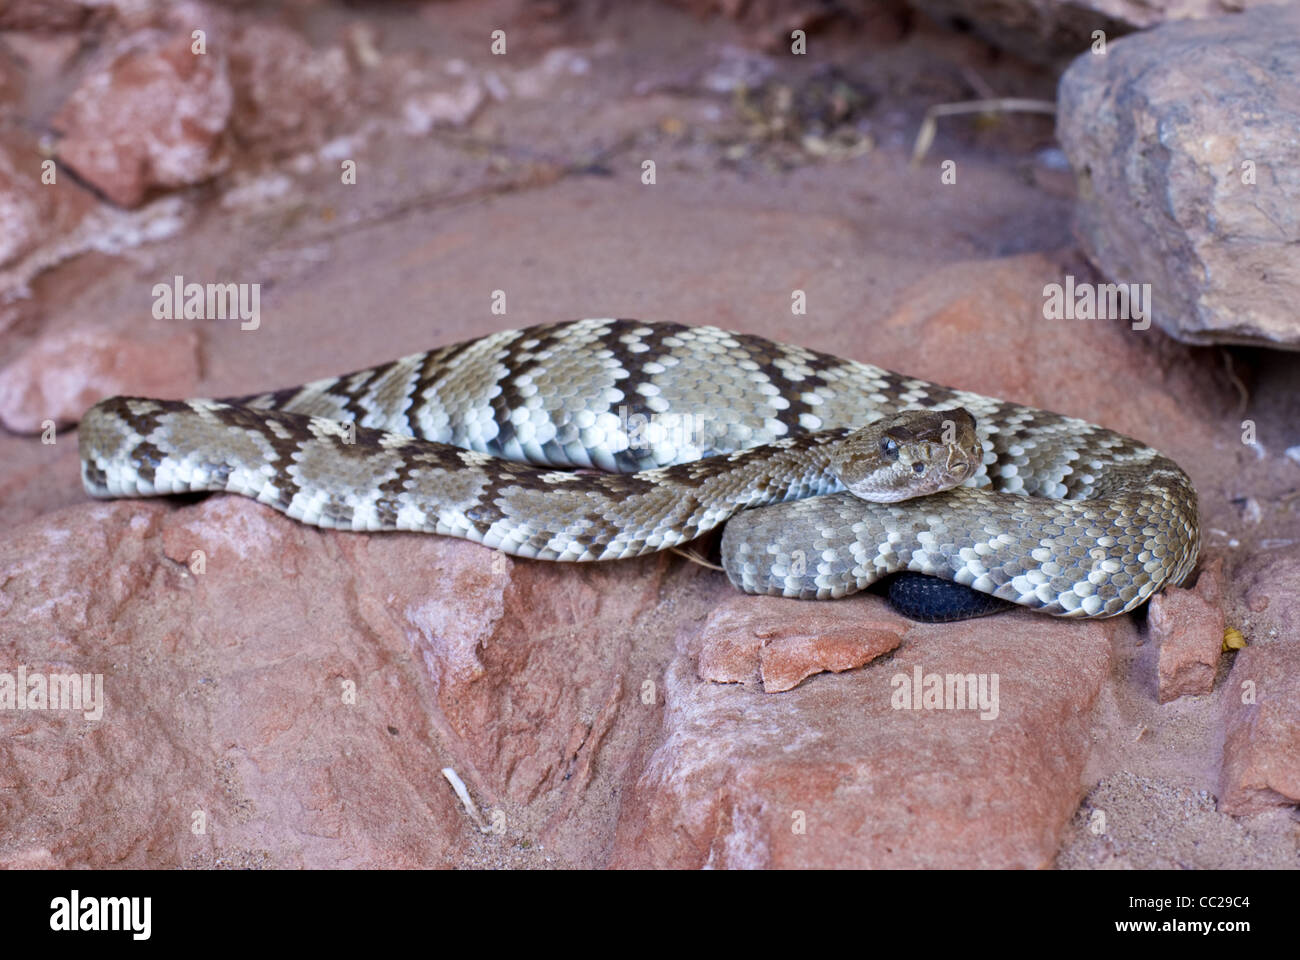 Sub-adult Northern Black-tailed Rattlesnake, (Crotalus molossus molossus), Quebradas, Socorro county, New Mexico, Stock Photo